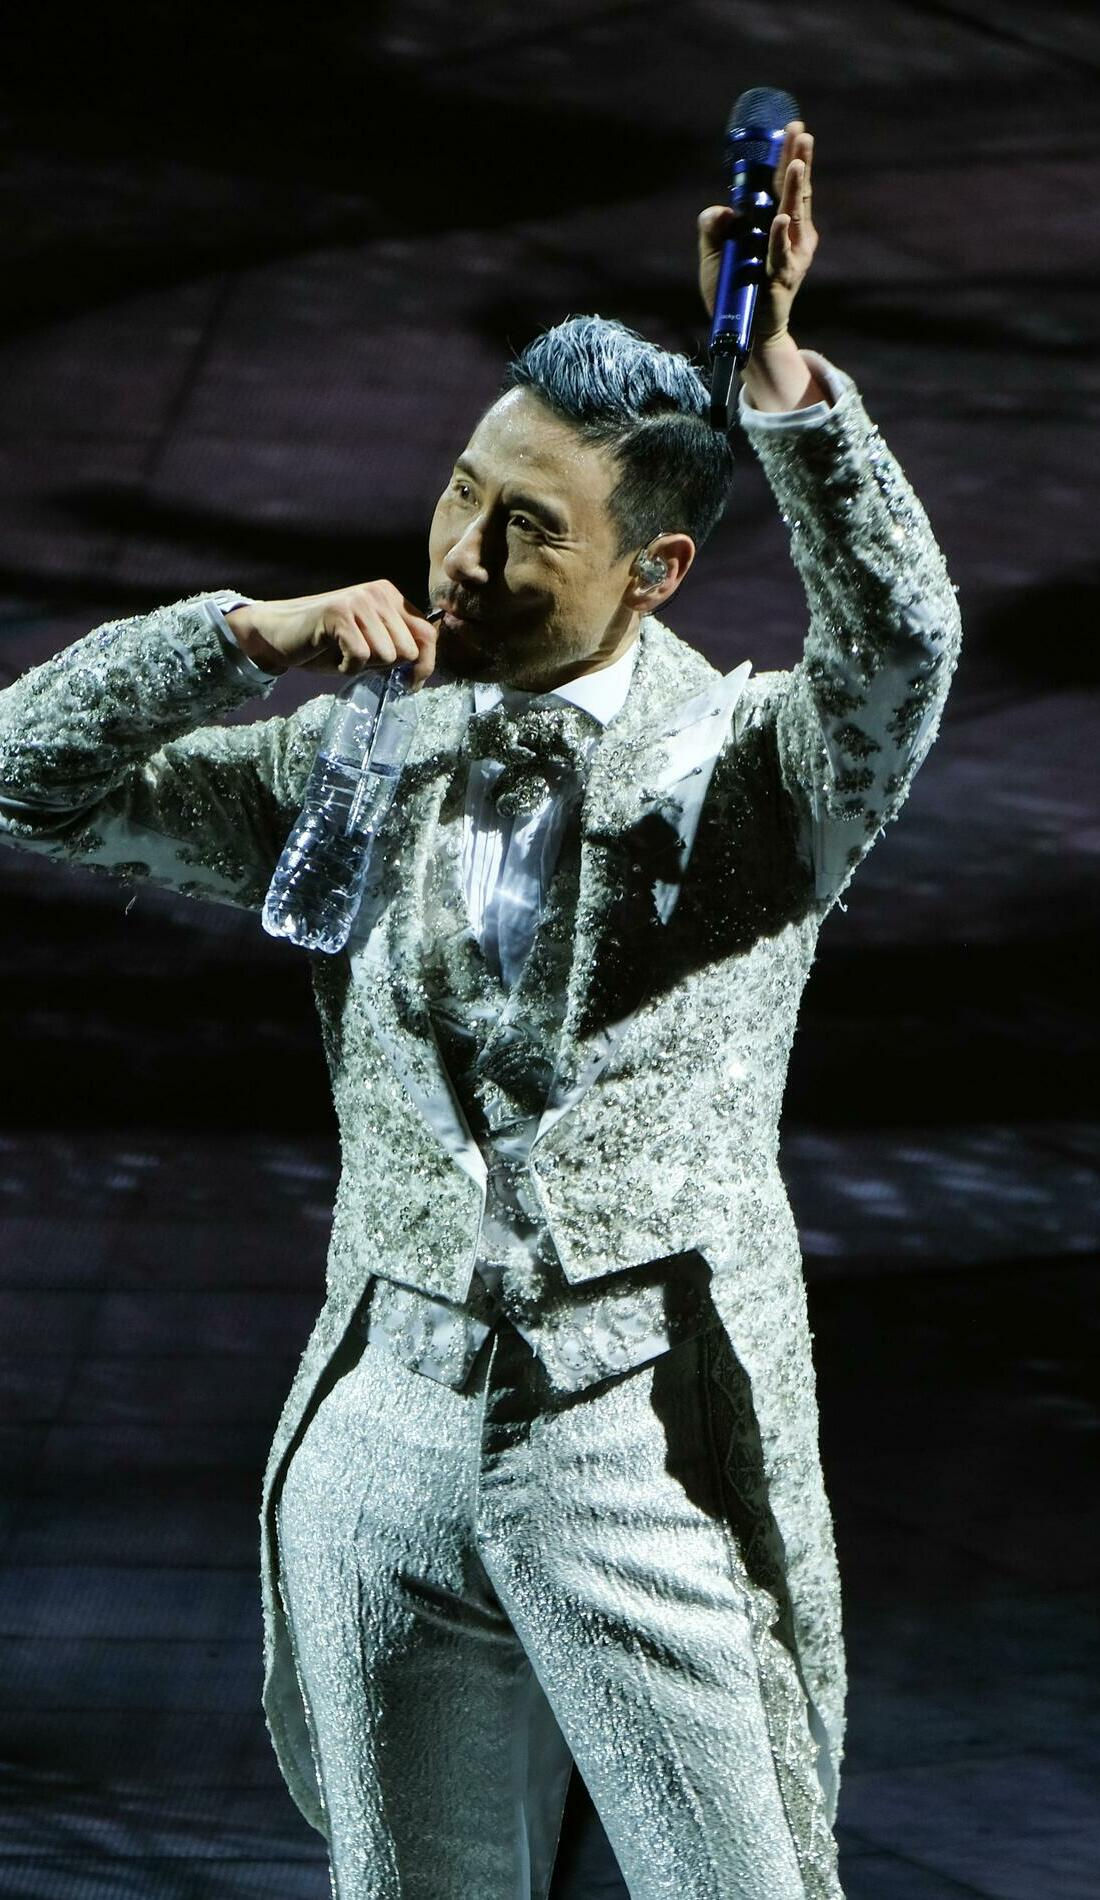 A Jacky Cheung live event